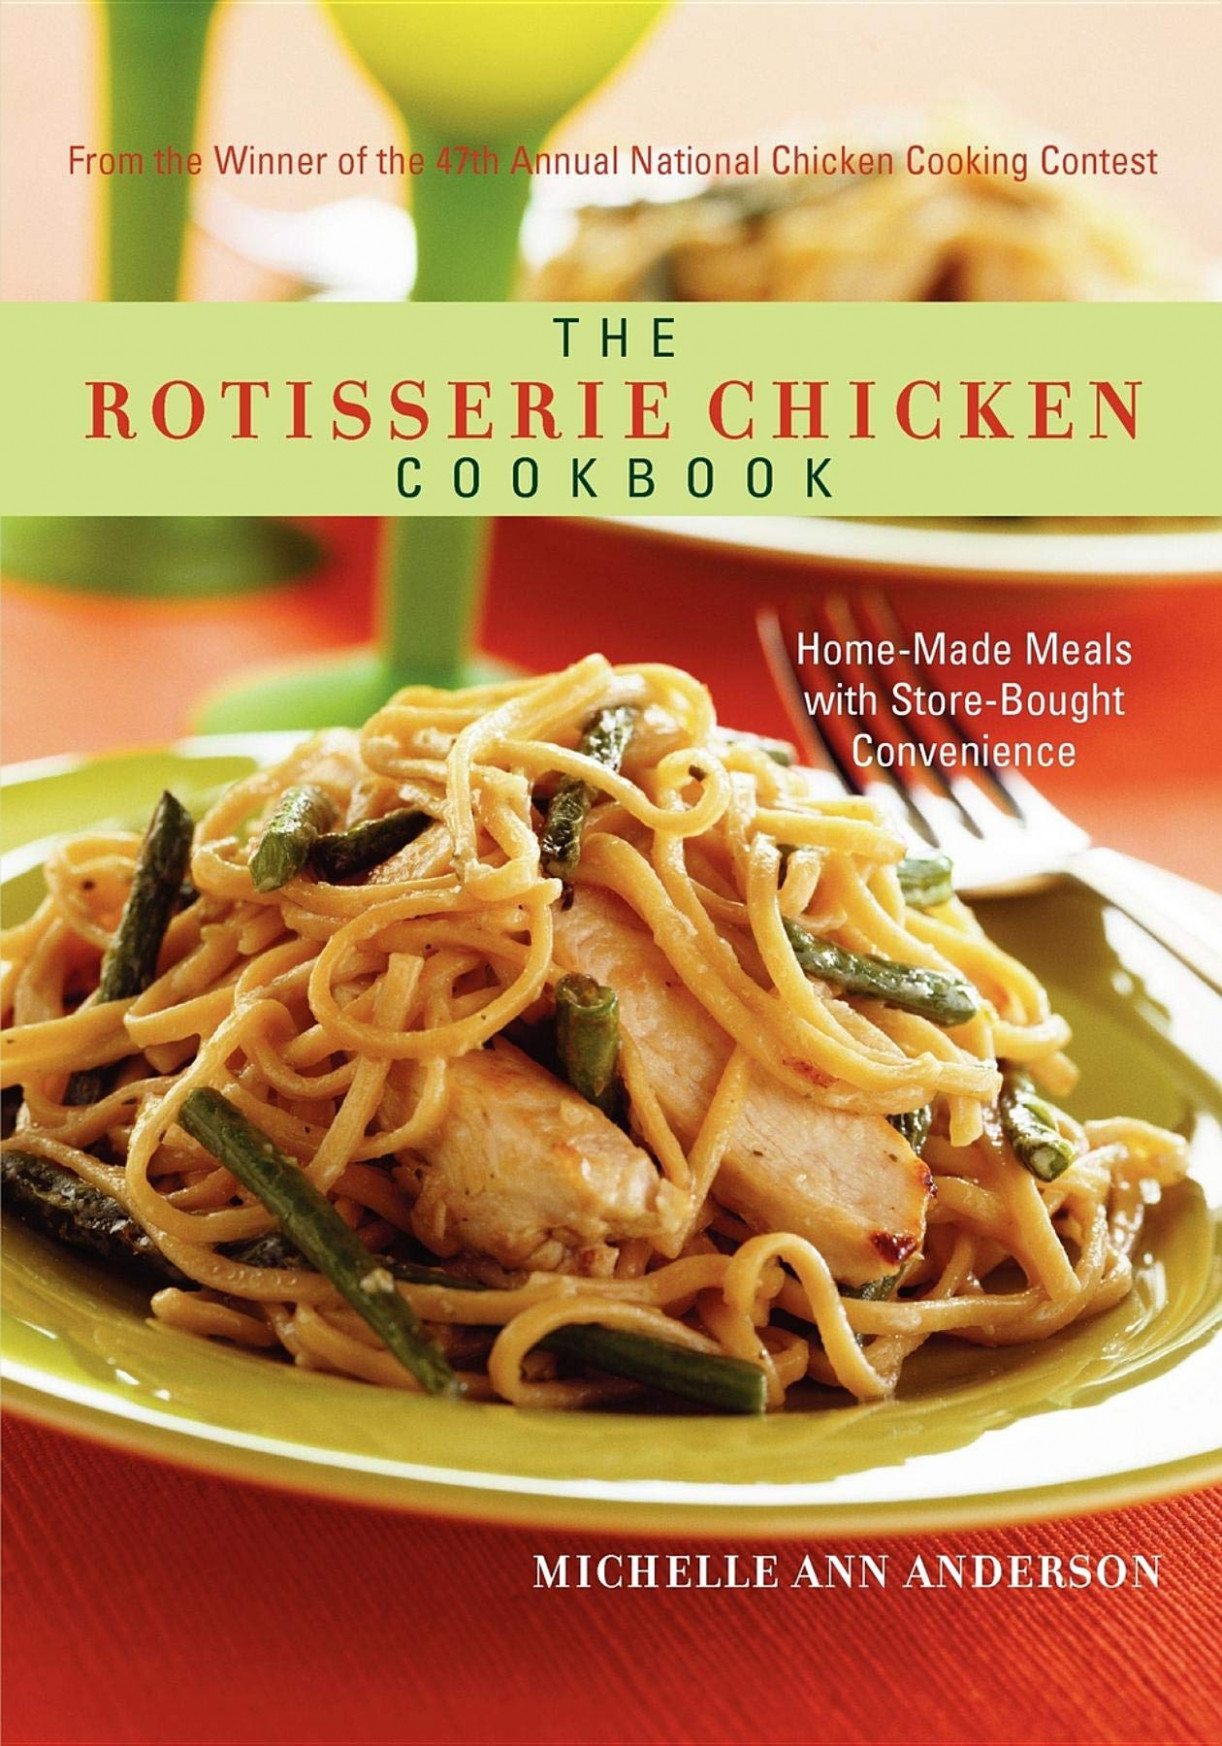 The Rotisserie Chicken Cookbook: Home-Made Meals with Store ..